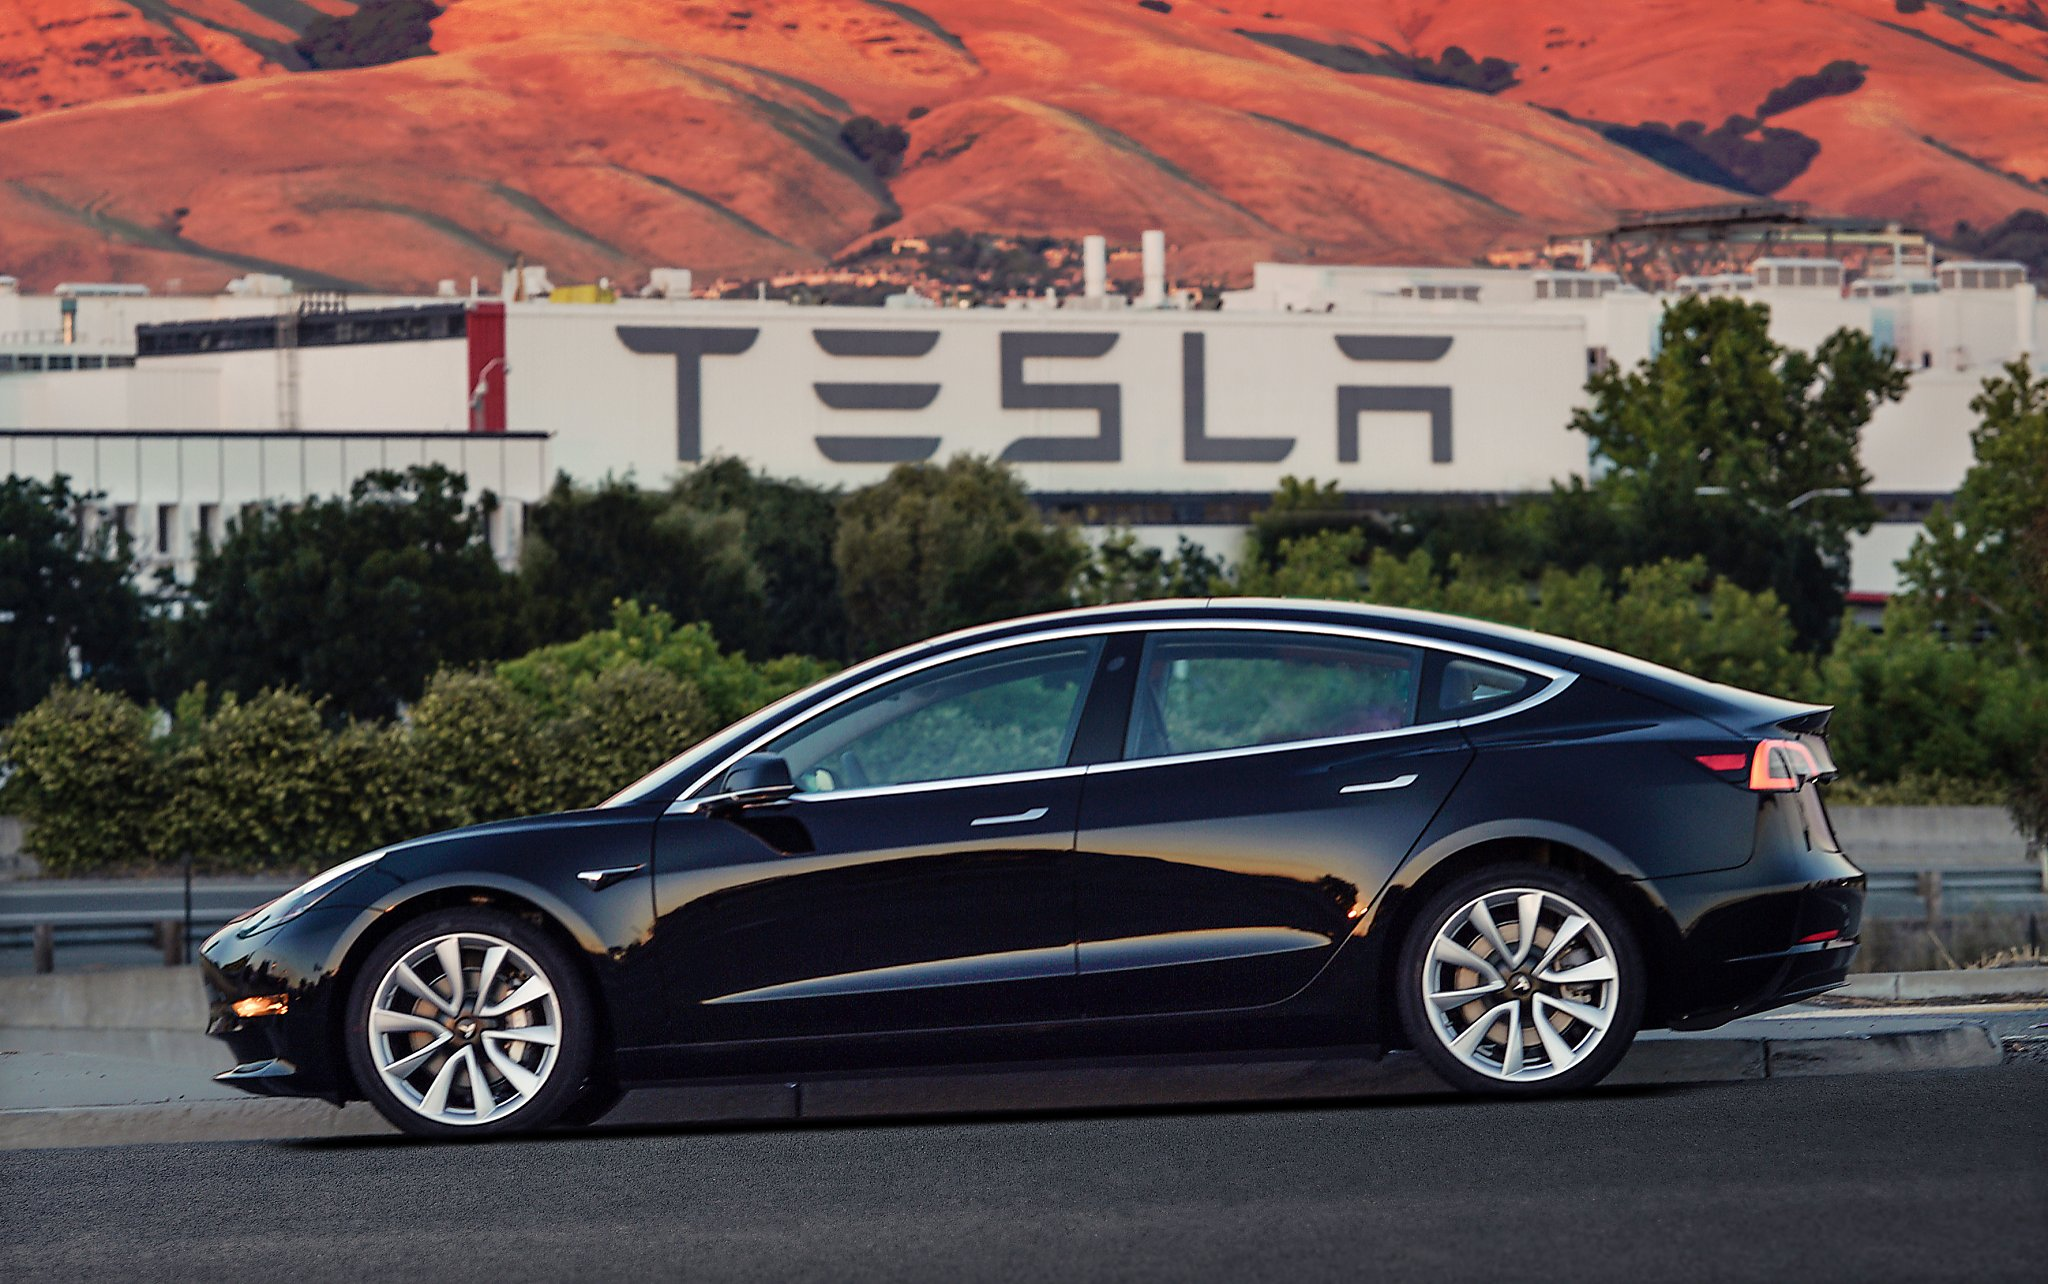 Created At 2017 07 29 1208 2008 Ford Taurus Limited Heatseat Fuse Box Reuterscom Elon Musk Hands Over The 1st Tesla Model 3s And Reveals Its Secrets